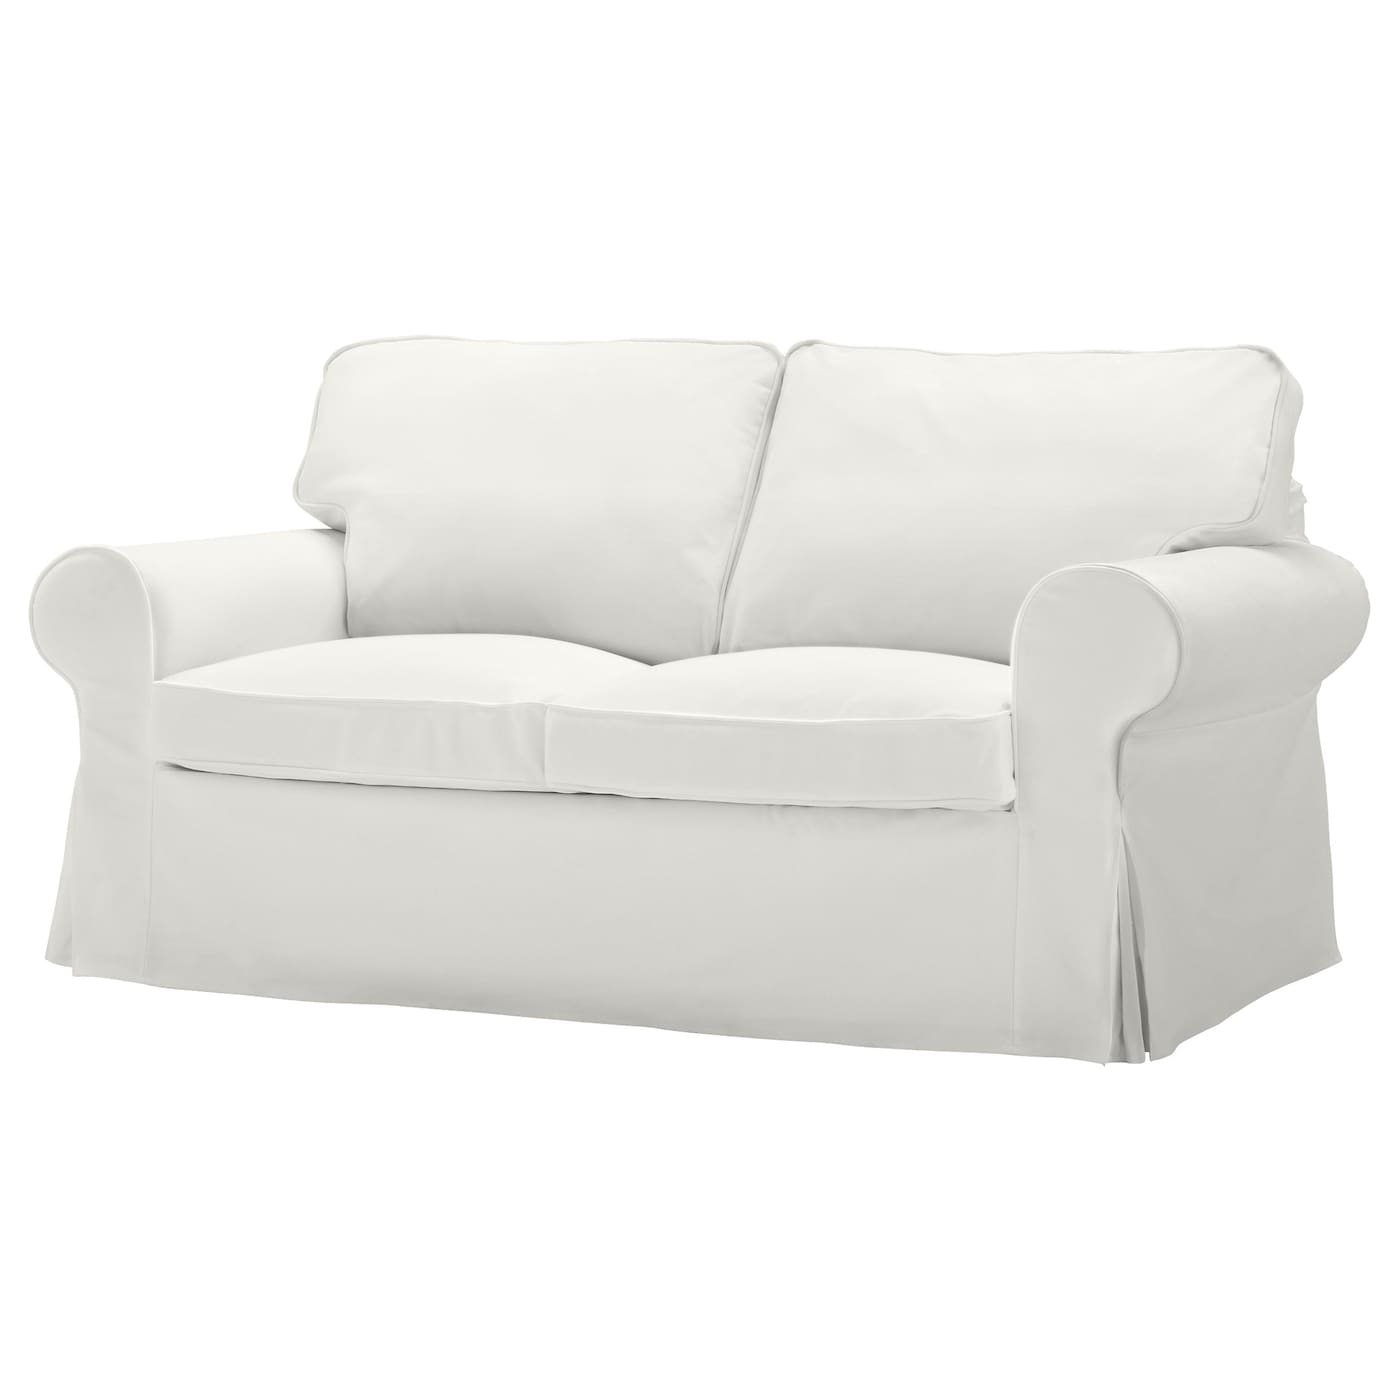 ektorp two seat sofa blekinge white ikea. Black Bedroom Furniture Sets. Home Design Ideas